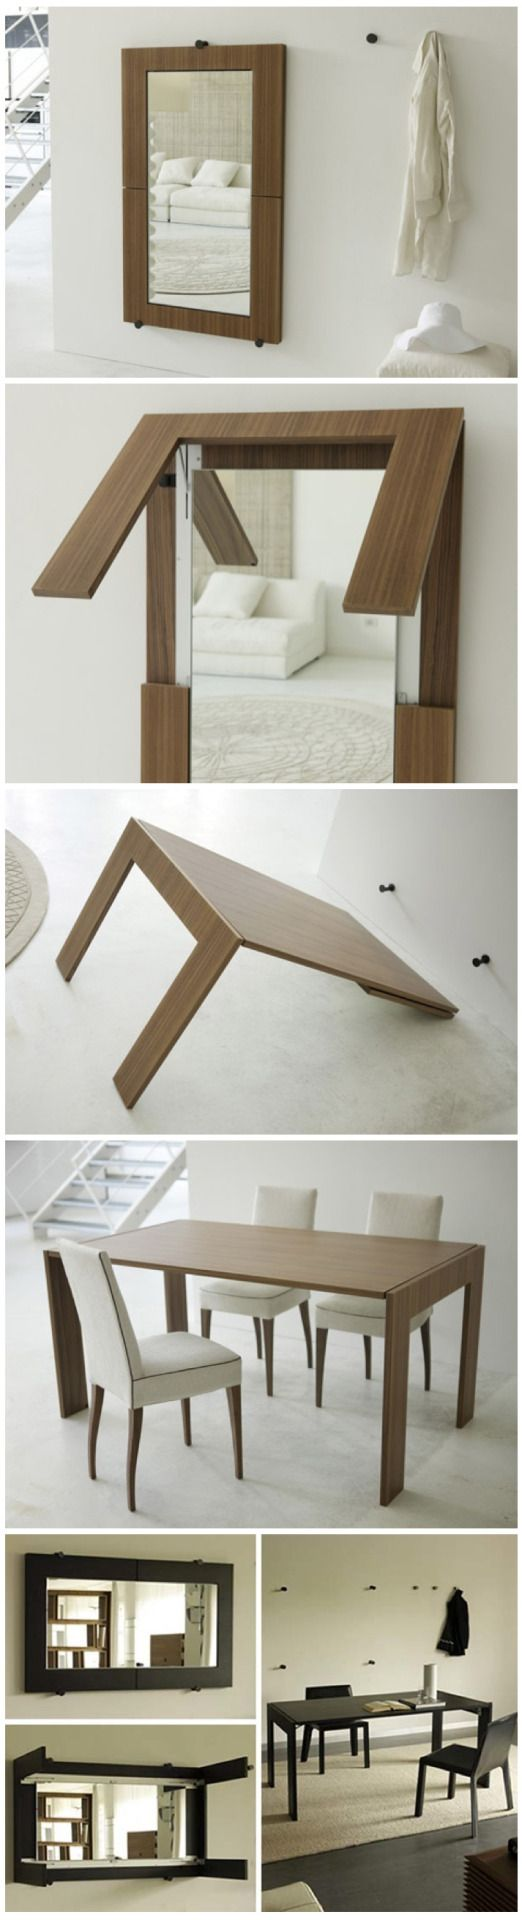 mirror / table conversion Muebles que se modifican:que surtende la maleta- Maleta que es fa moble: Clever Mirrort, Tables Design, Mirror Folding Tables, 2623 Pixlar, Products Design, Design Fornitur,...